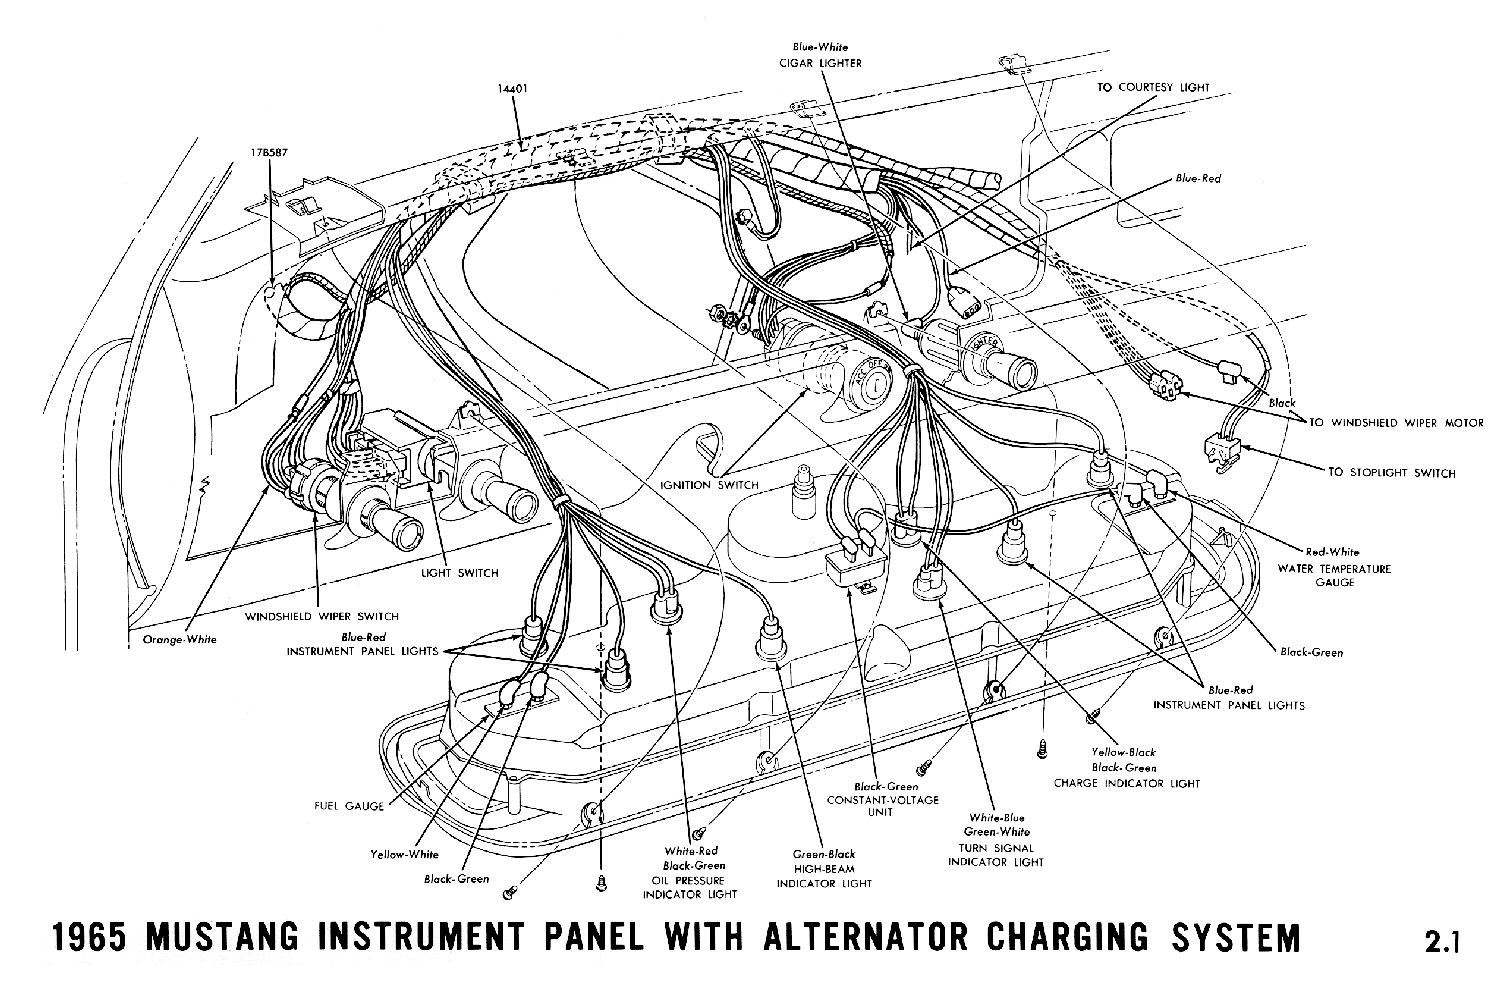 1965 Mustang Wiring Diagrams Average Joe Restoration V8 Engine Diagram 1965a